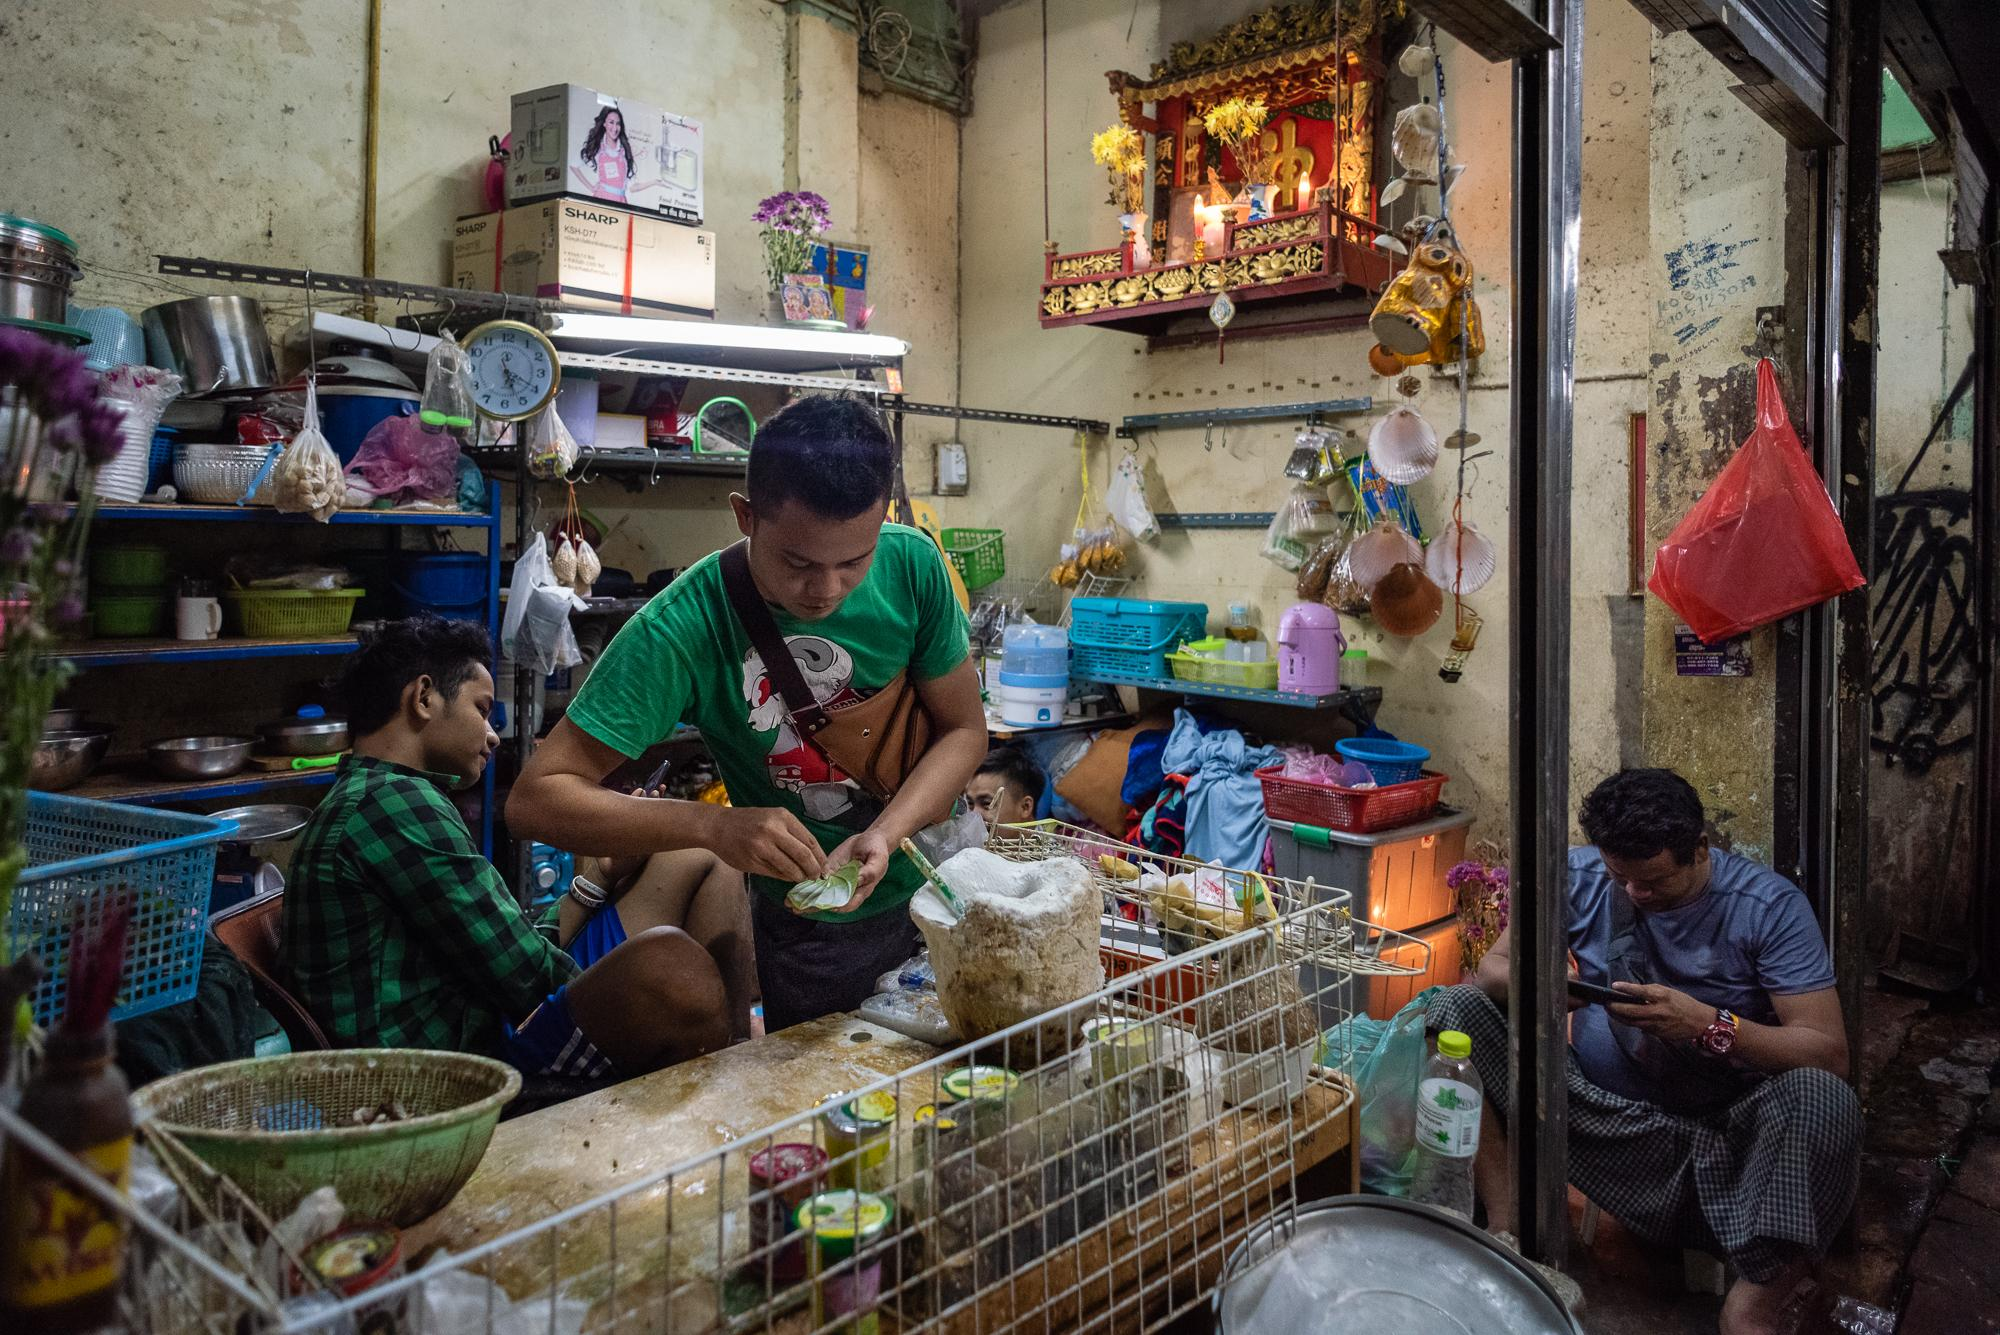 BANGKOK, THAILAND – AUGUST 25, 2018: A betel shop run by a family of Burmese workers in the Old Market. It also serves as the meeting point for Burmese workers in Yaowarat. Many Burmese men still maintain the habit of betel chewing, even when it is no longer common in urban society of Bangkok.